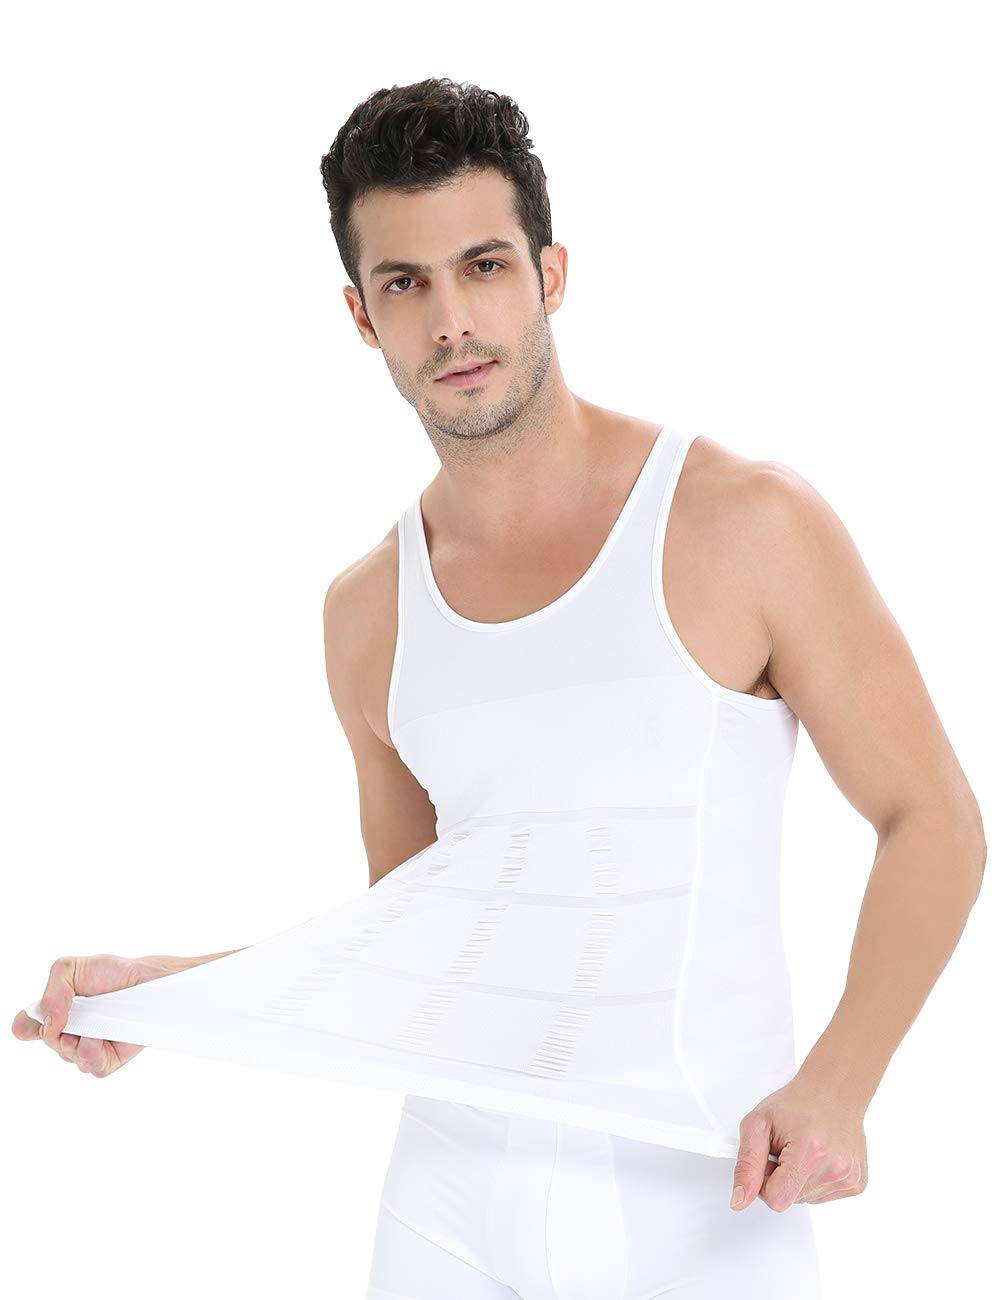 Roacoa Compression Shirts for Men, Tummy Control and Gynecomastia Slimming Body Shaper (X-Large, White)